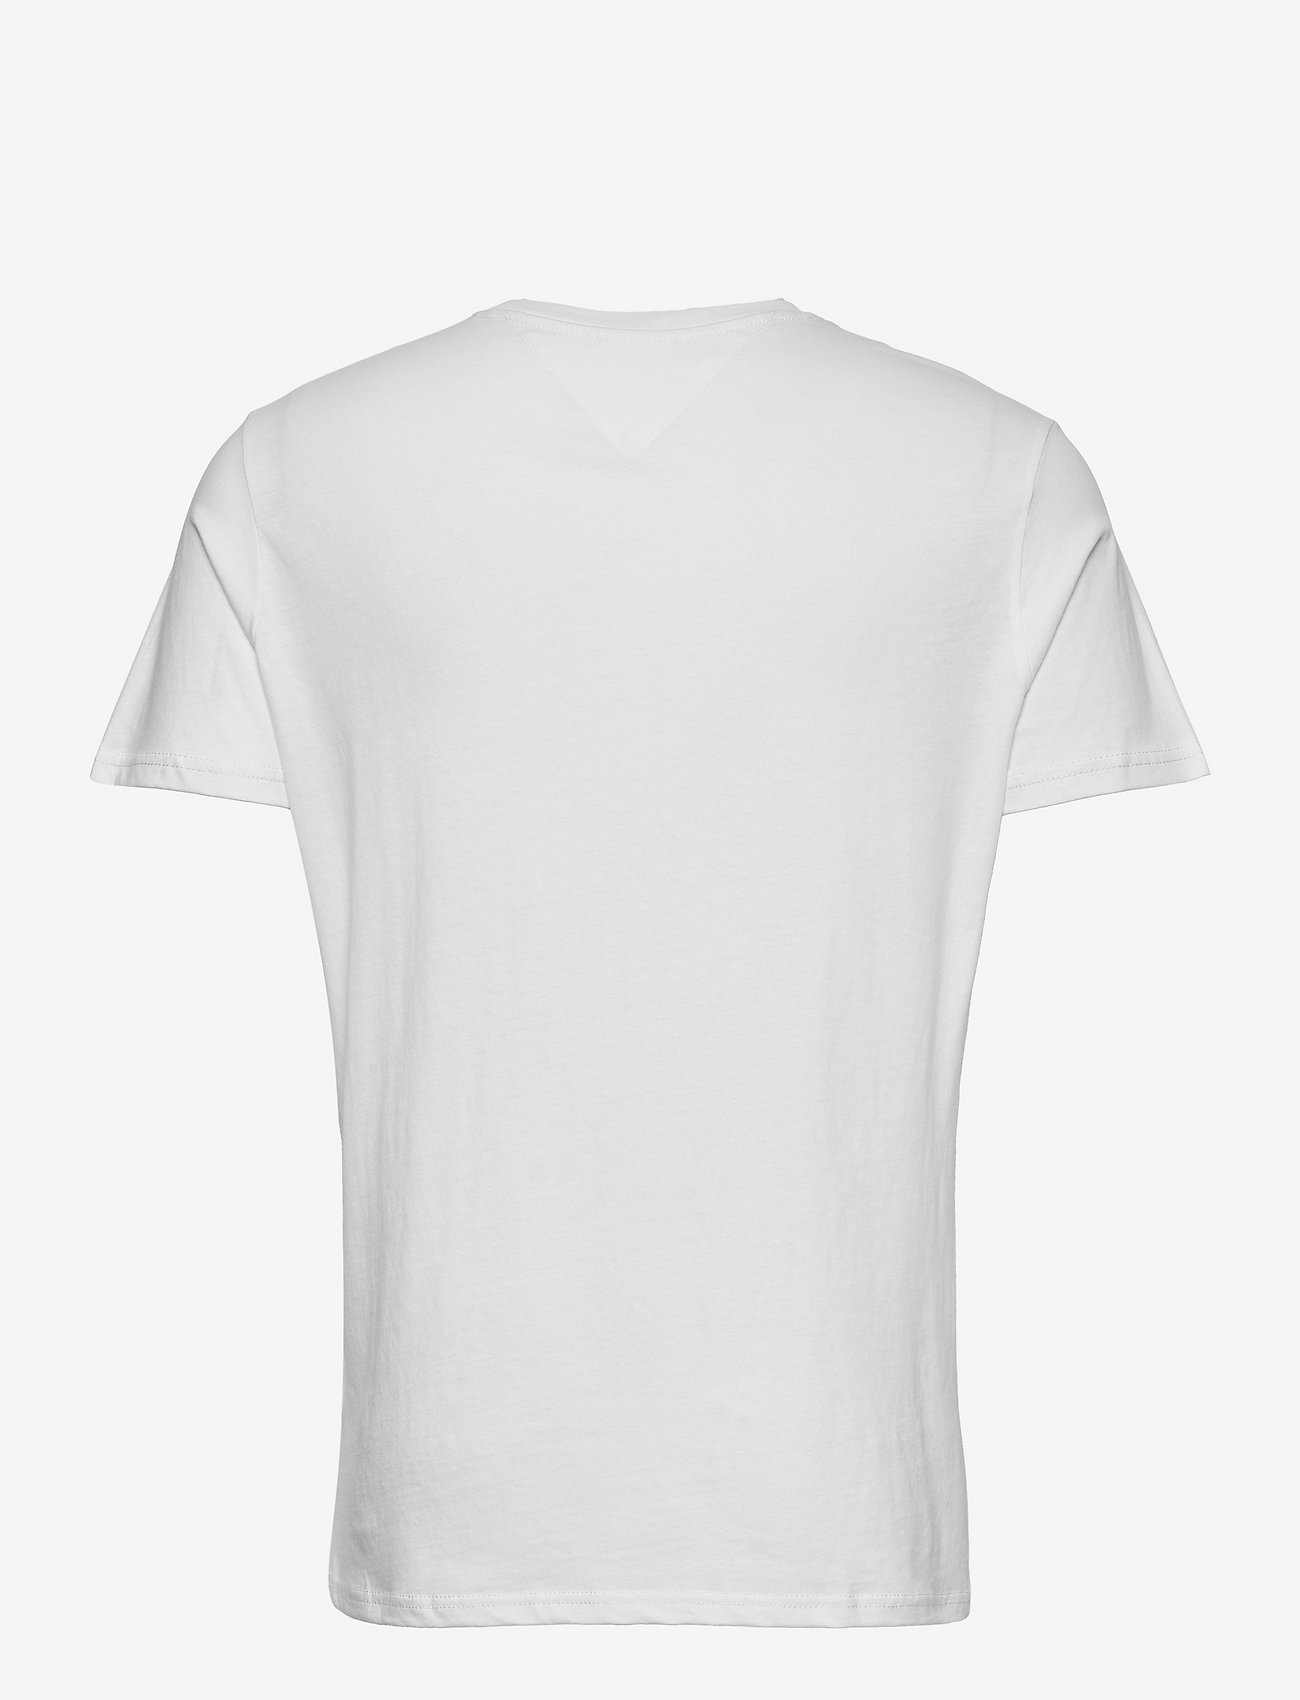 Tommy Jeans - TJM ESSENTIAL GRAPHIC TEE - kortärmade t-shirts - white - 1